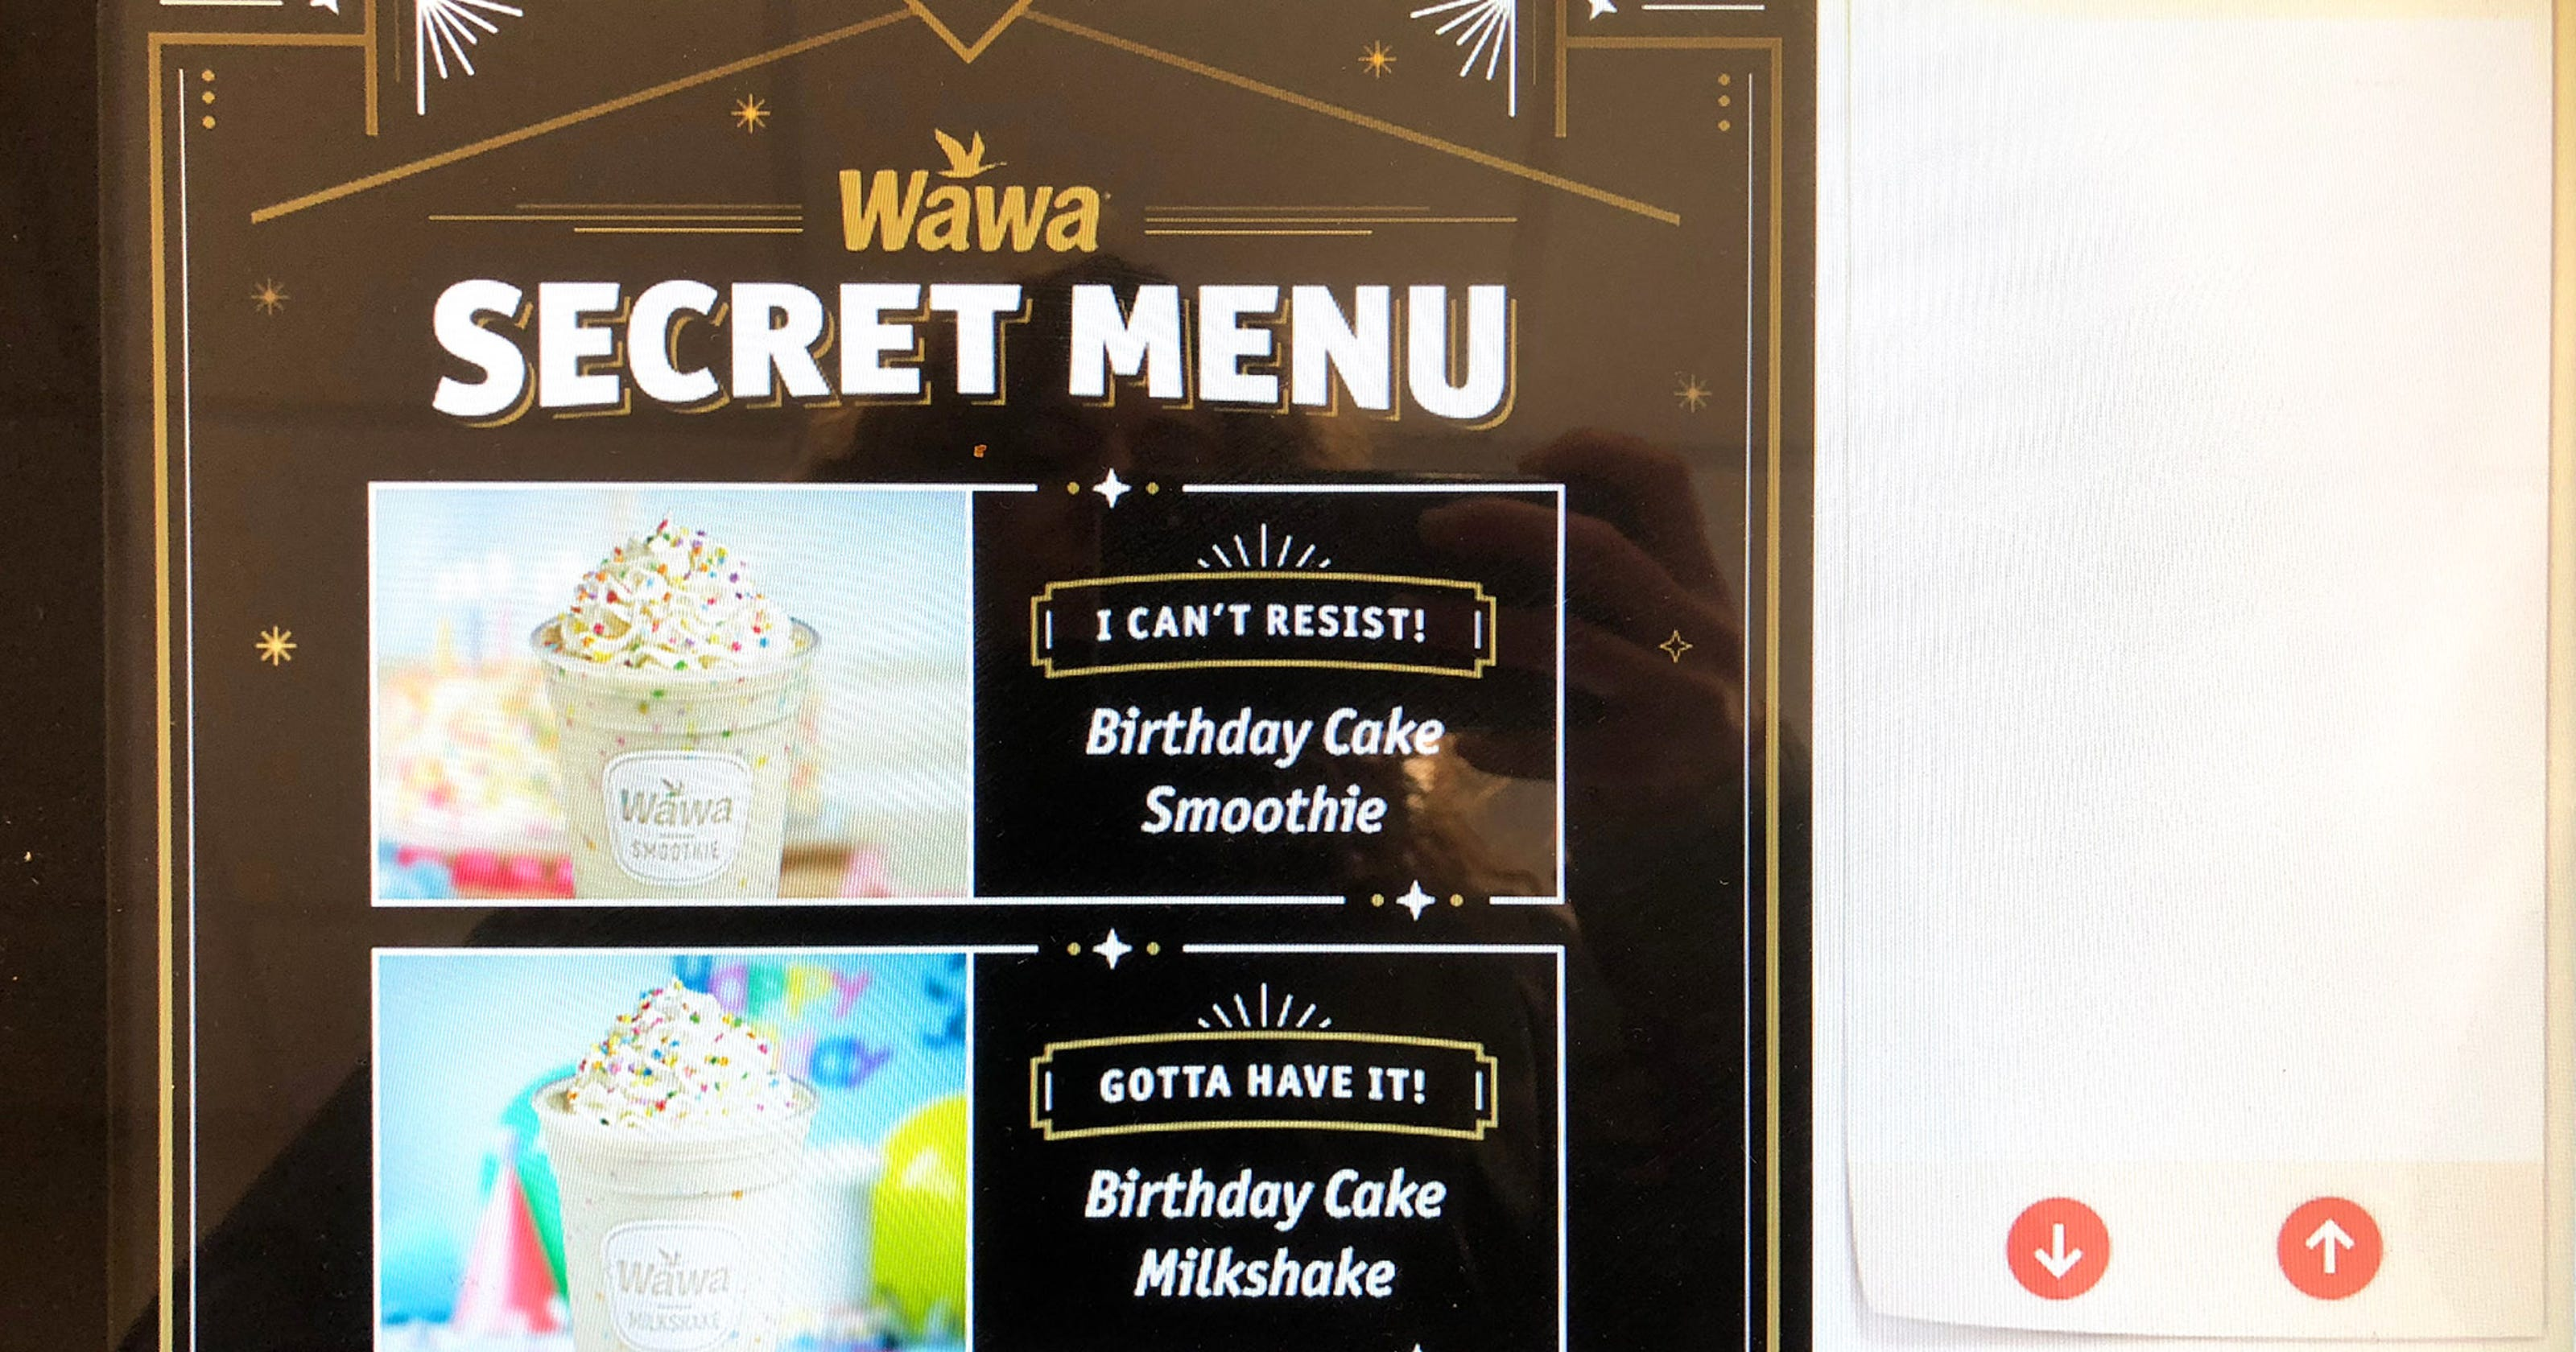 How To Unlock Wawas Secret Menu And Get Birthday Cake Shakes